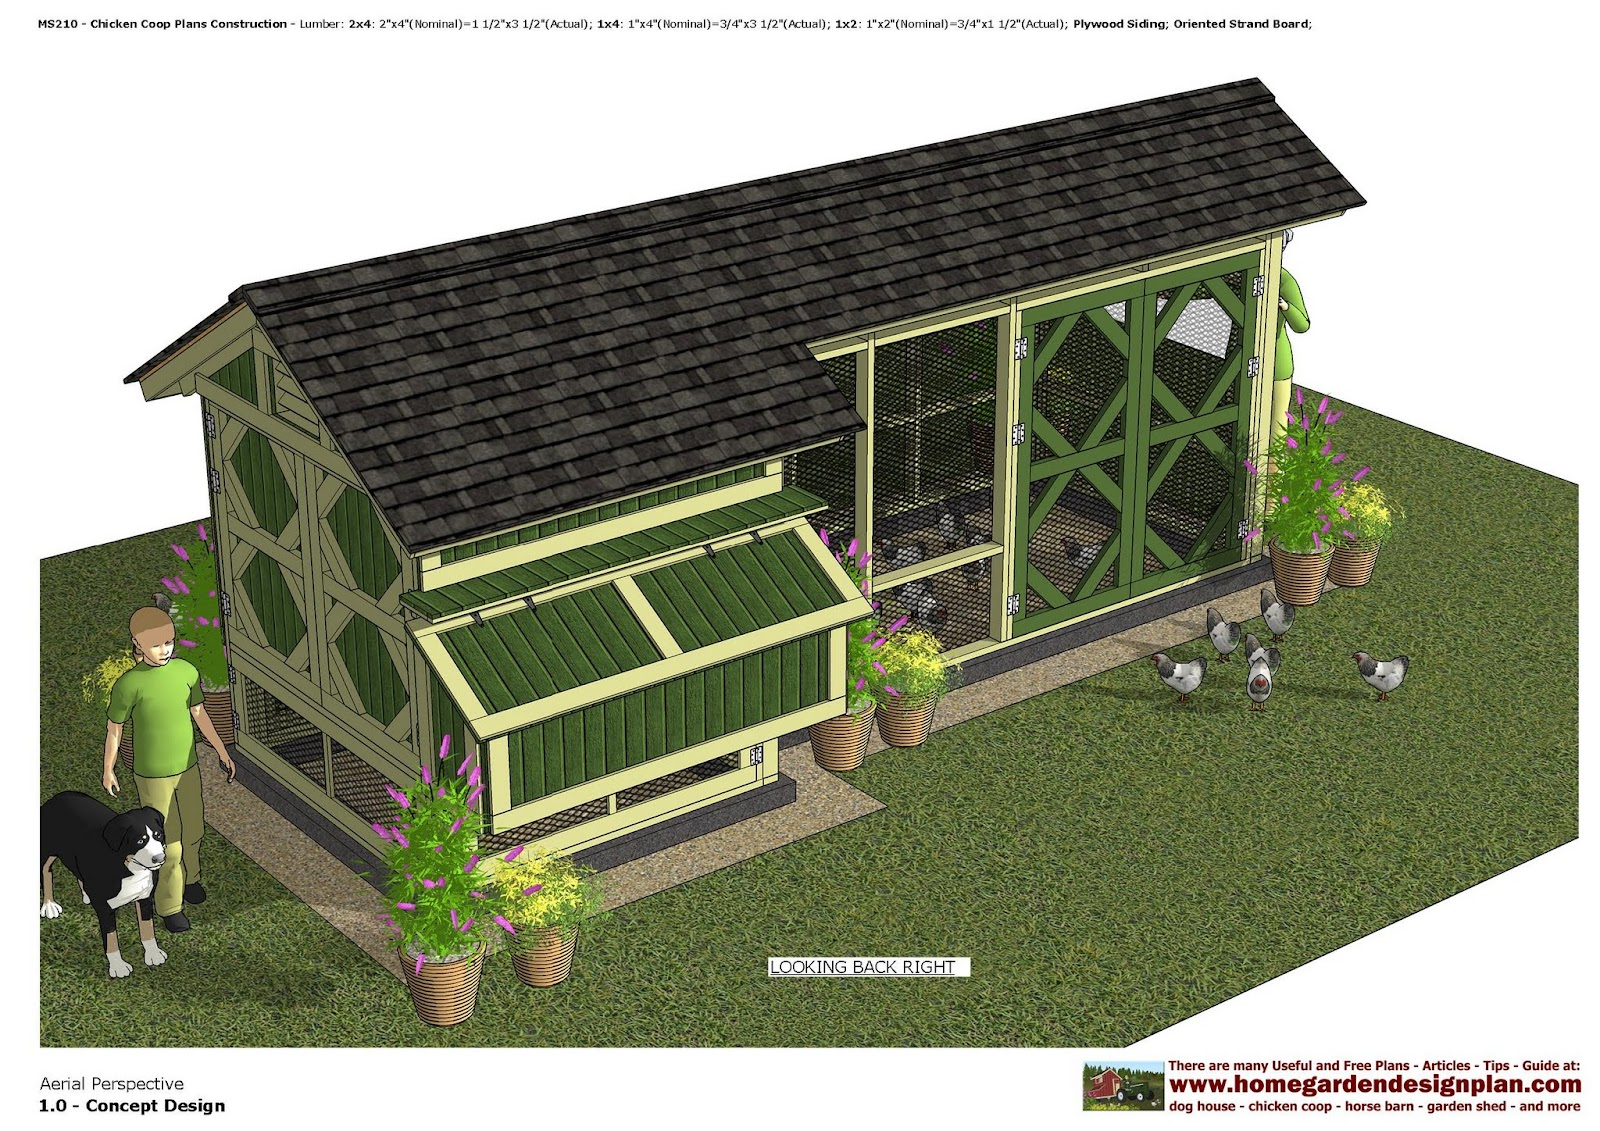 Home garden plans ms210 chicken coop plans construction for Chicken coop size for 6 chickens